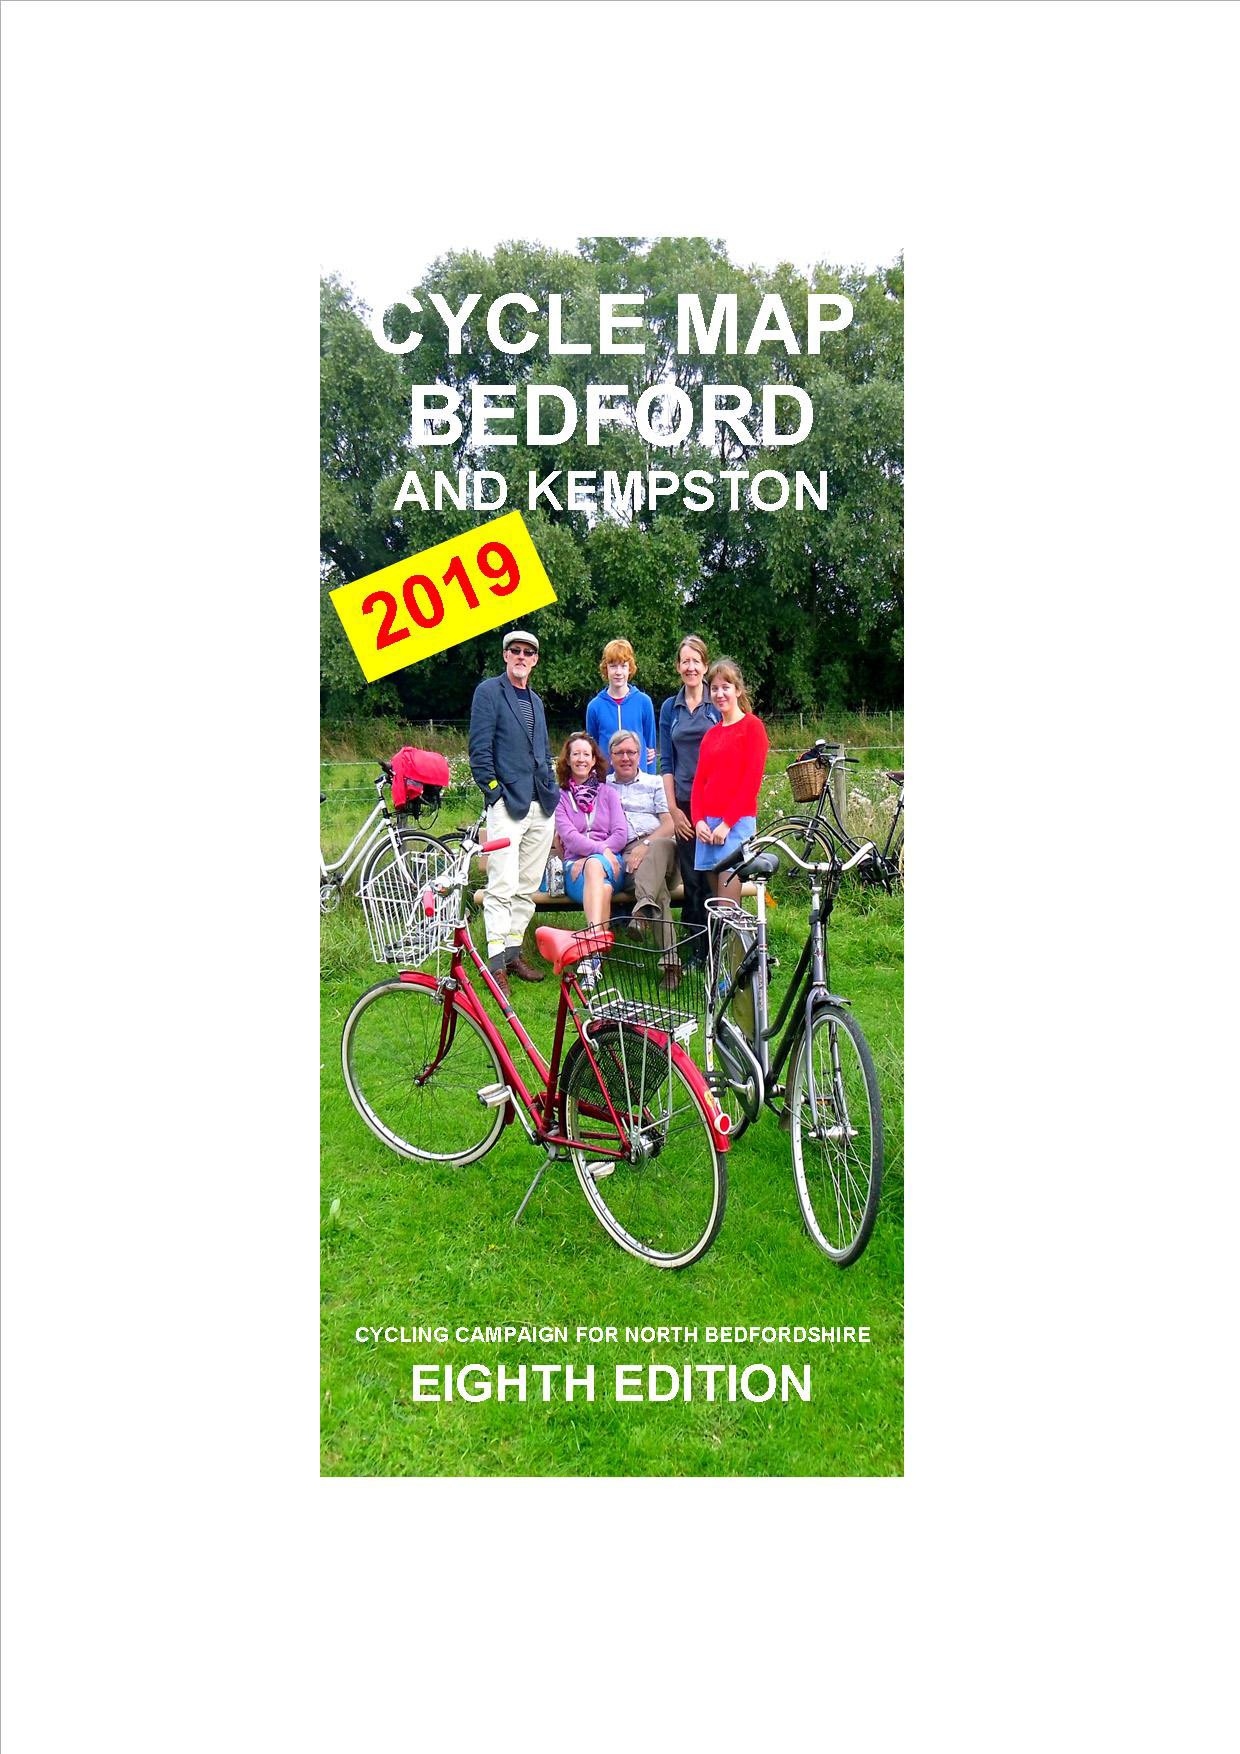 Bedford and Kempston Cycle Map